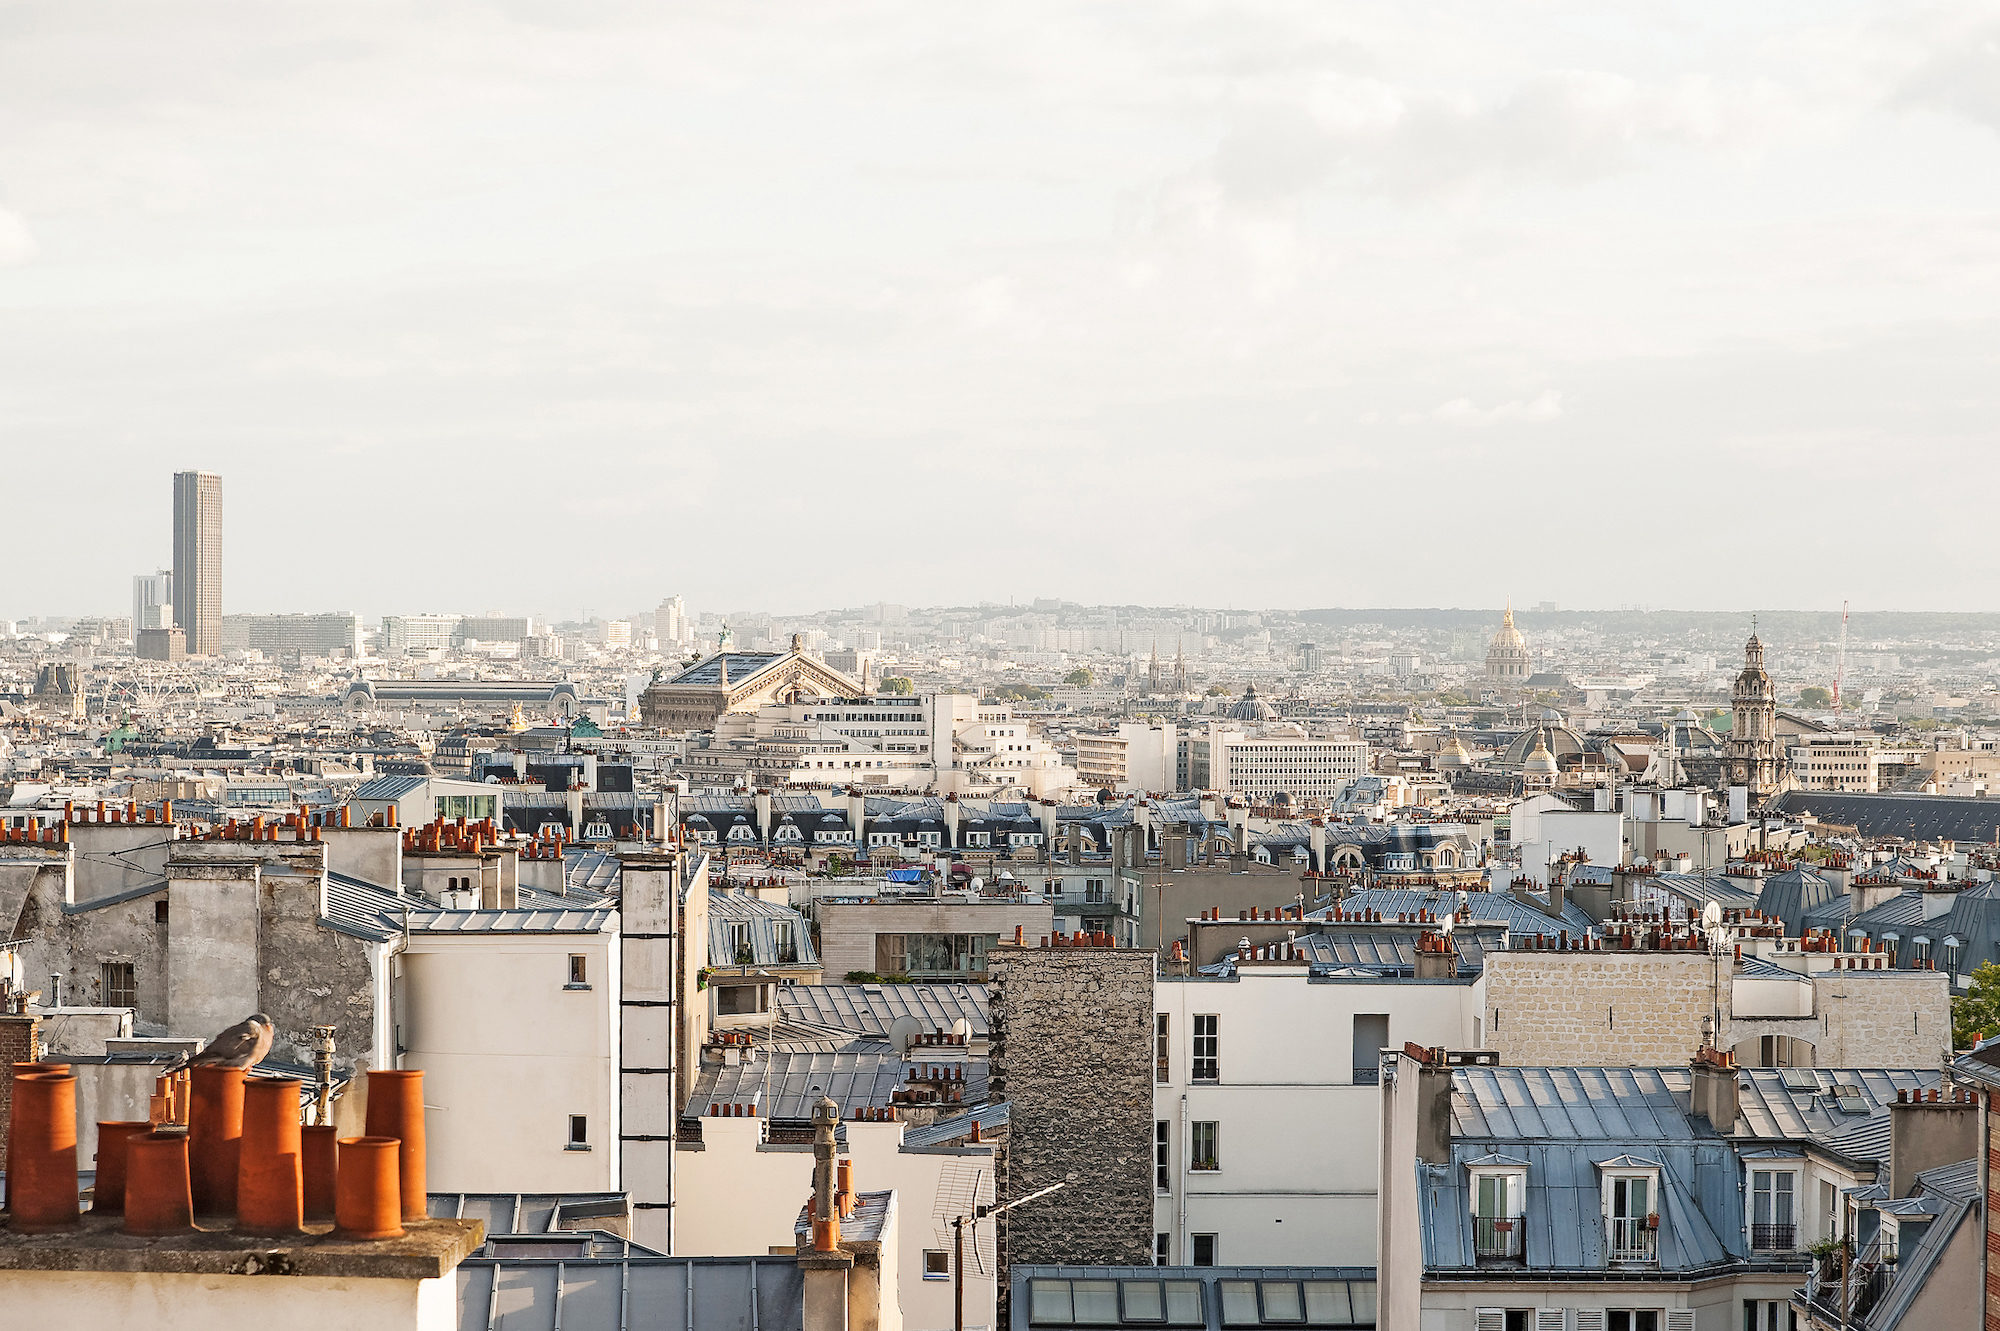 The panoramic view of the Paris rooftops from the top of Montmartre.